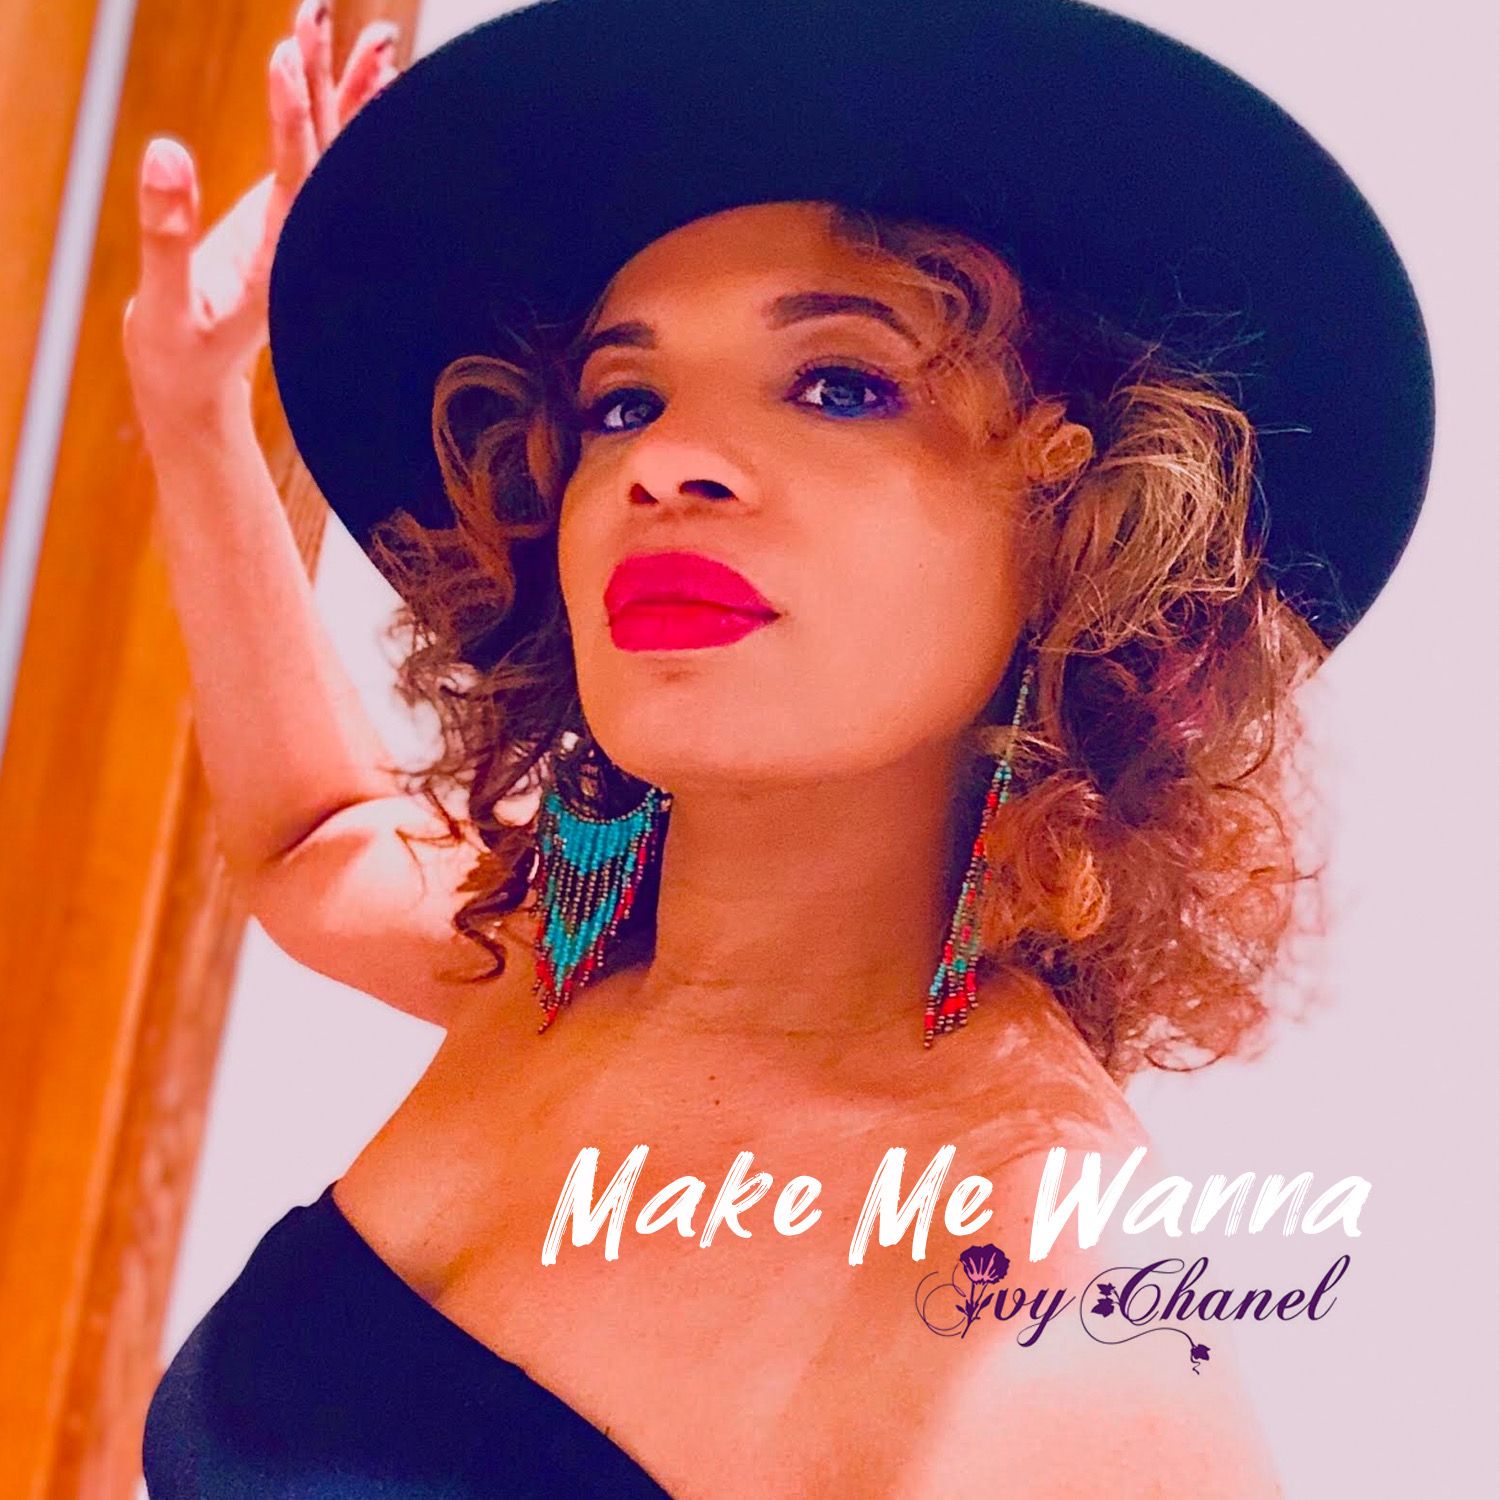 VOCAL COACH TO THE STARS IVY CHANEL DROPS BLAZIN NEW SINGLE 'MAKE ME WANNA'